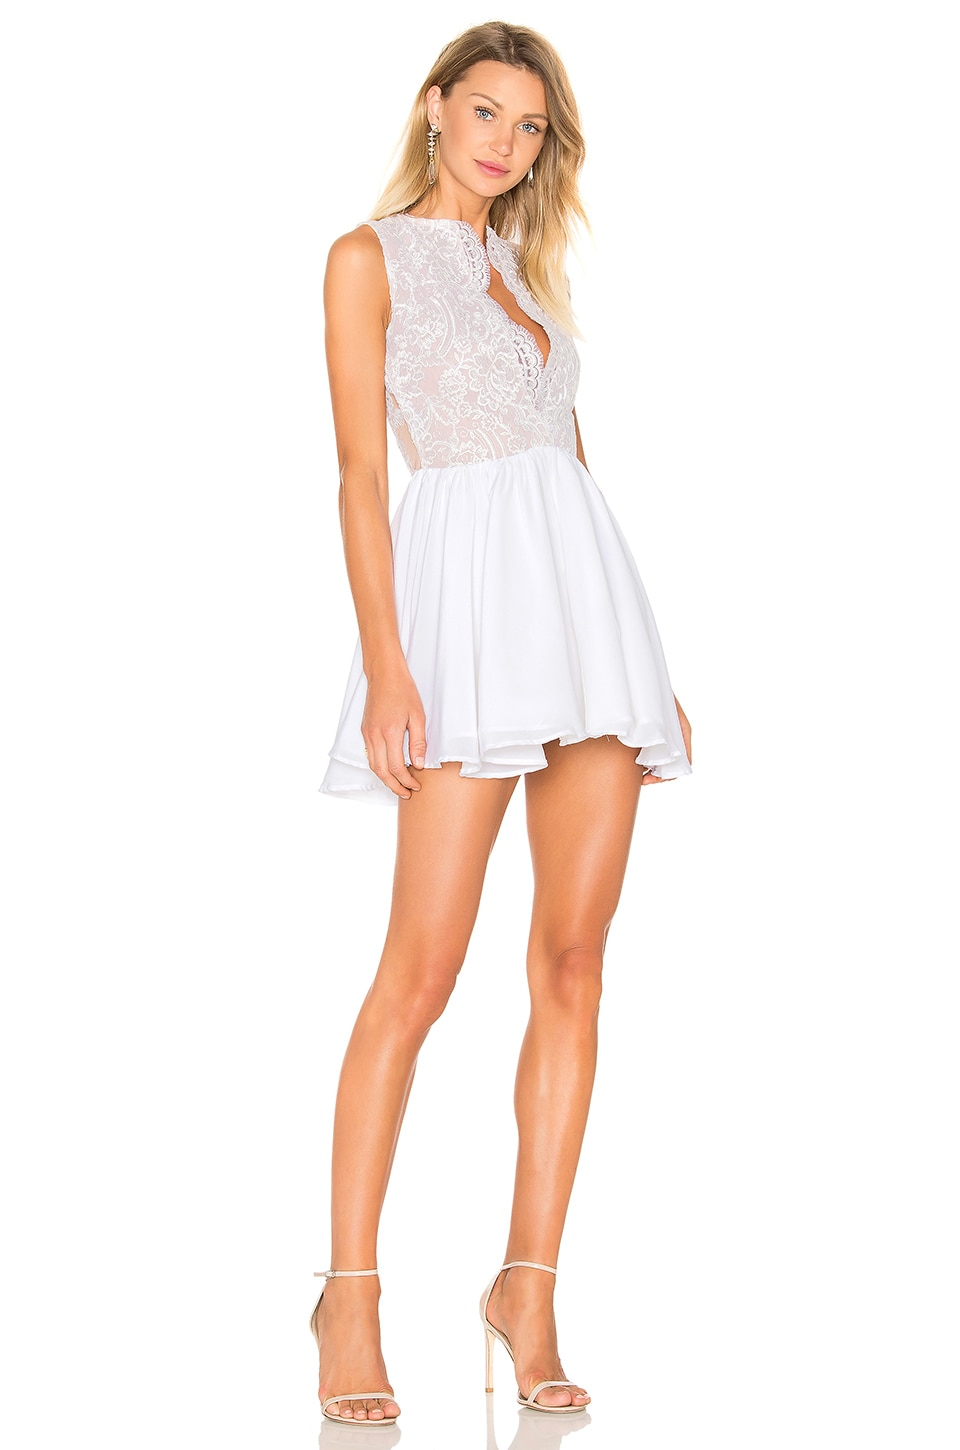 Tres Jolie Mini Dress by Lurelly